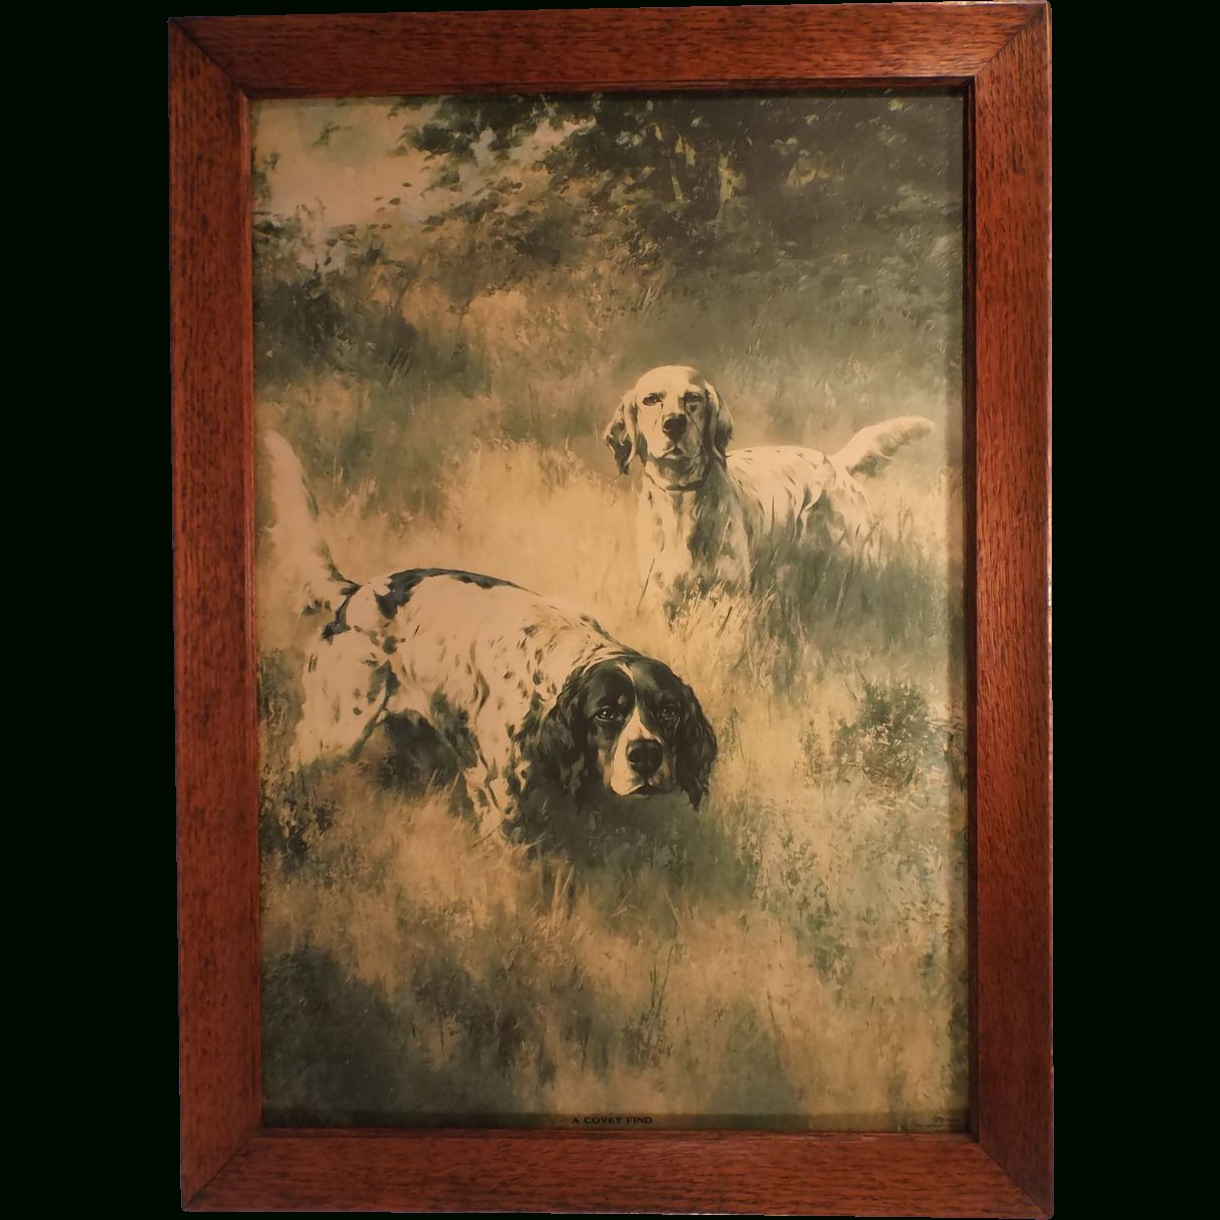 A Covey Find, Vintage Fine Art Framed Hunting Dog Print, Percival In Most Current Framed Fine Art Prints (View 1 of 15)